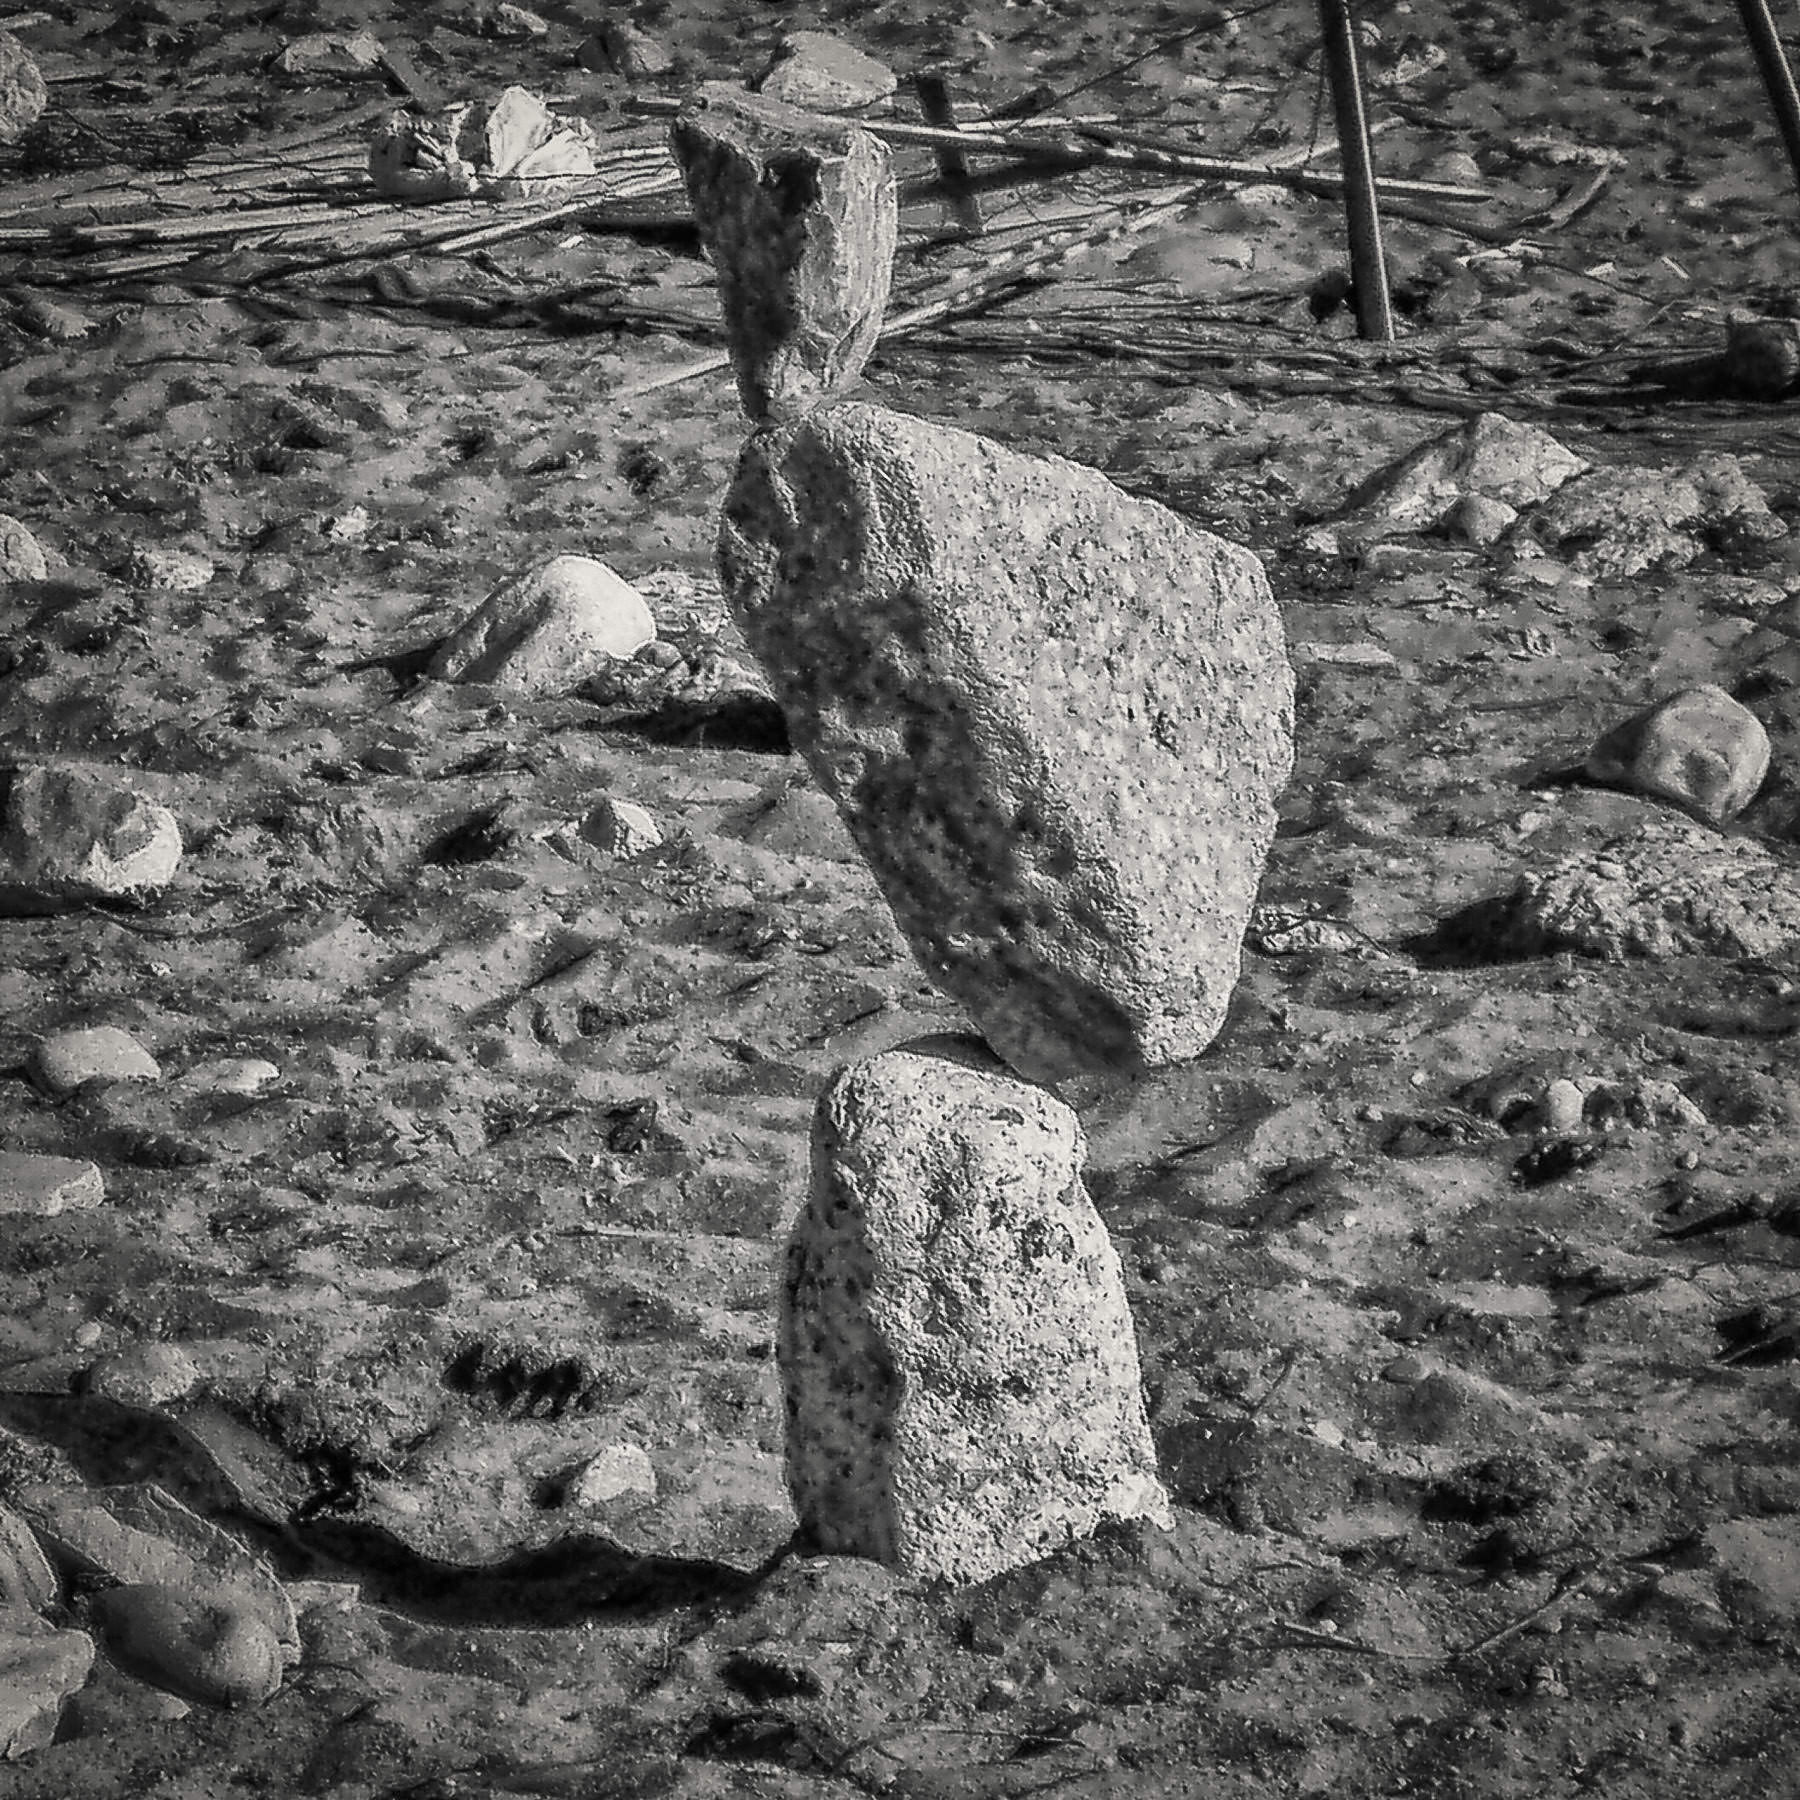 Rocks meticulously balanced in the sand at The Beaches, Toronto.